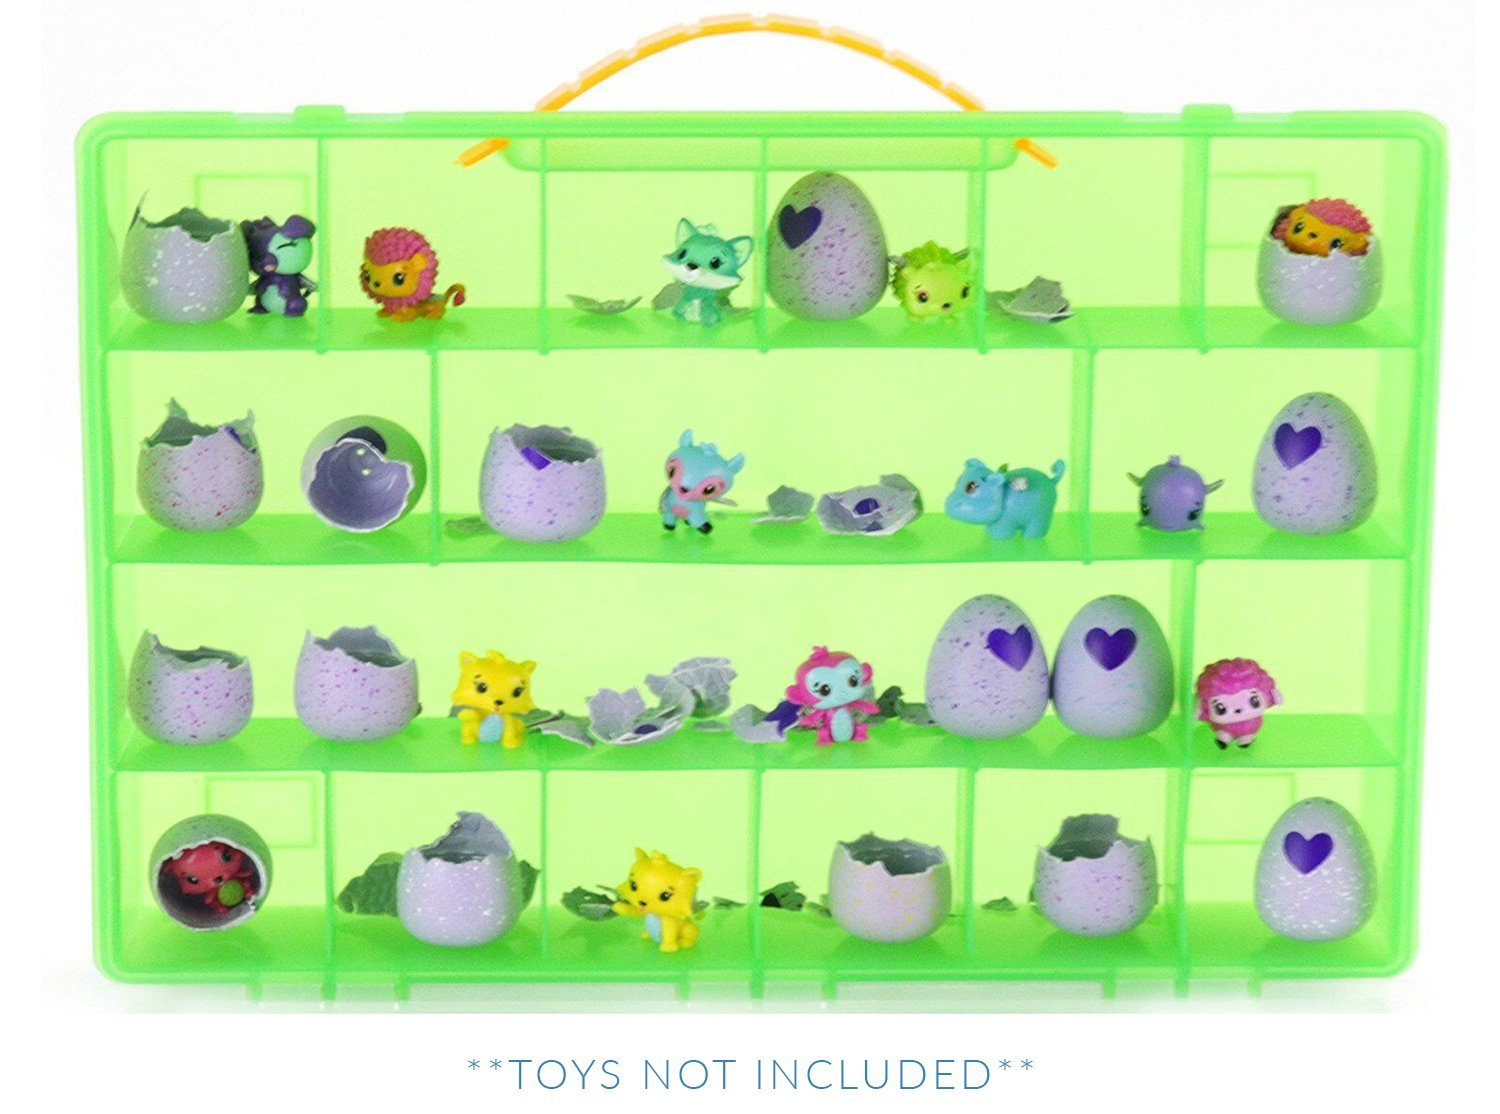 My Egg Crate Storage Organizer By Life Made Better - Compatible with the Hatchimals and Hatchimal Colleggtibles brands - Durable Carrying Case For Mini Eggs, Easter Eggs & Speckled Eggs –Green LMB155